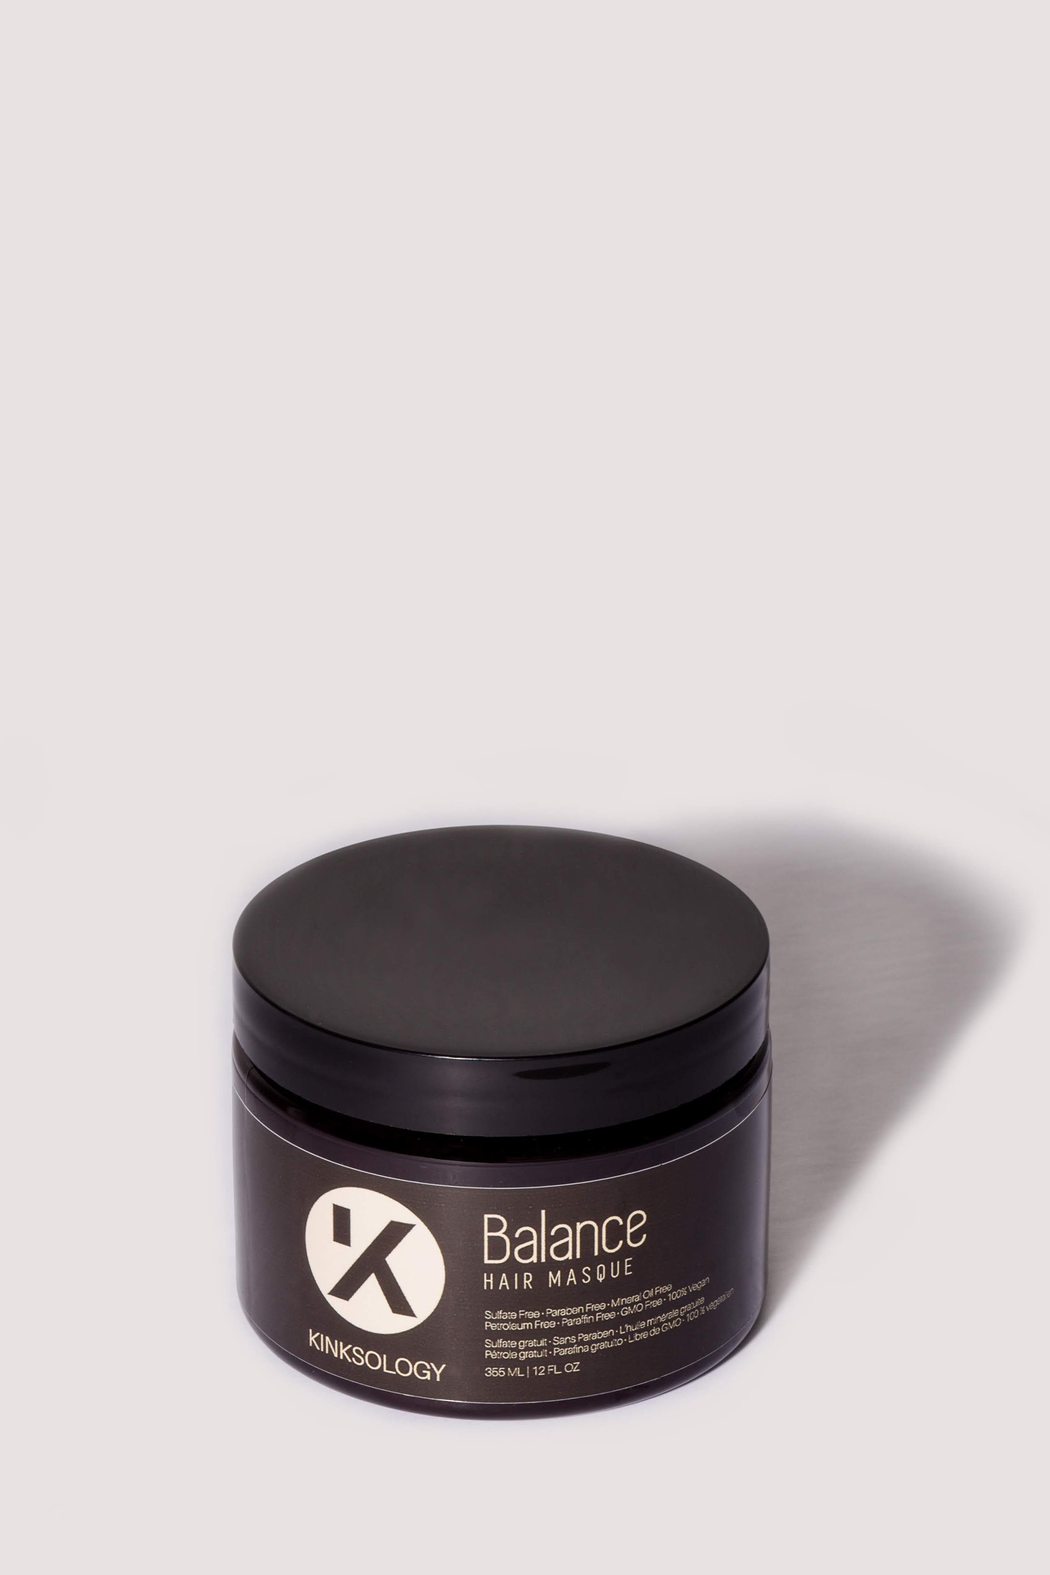 Kinksology Balance Hair Masque